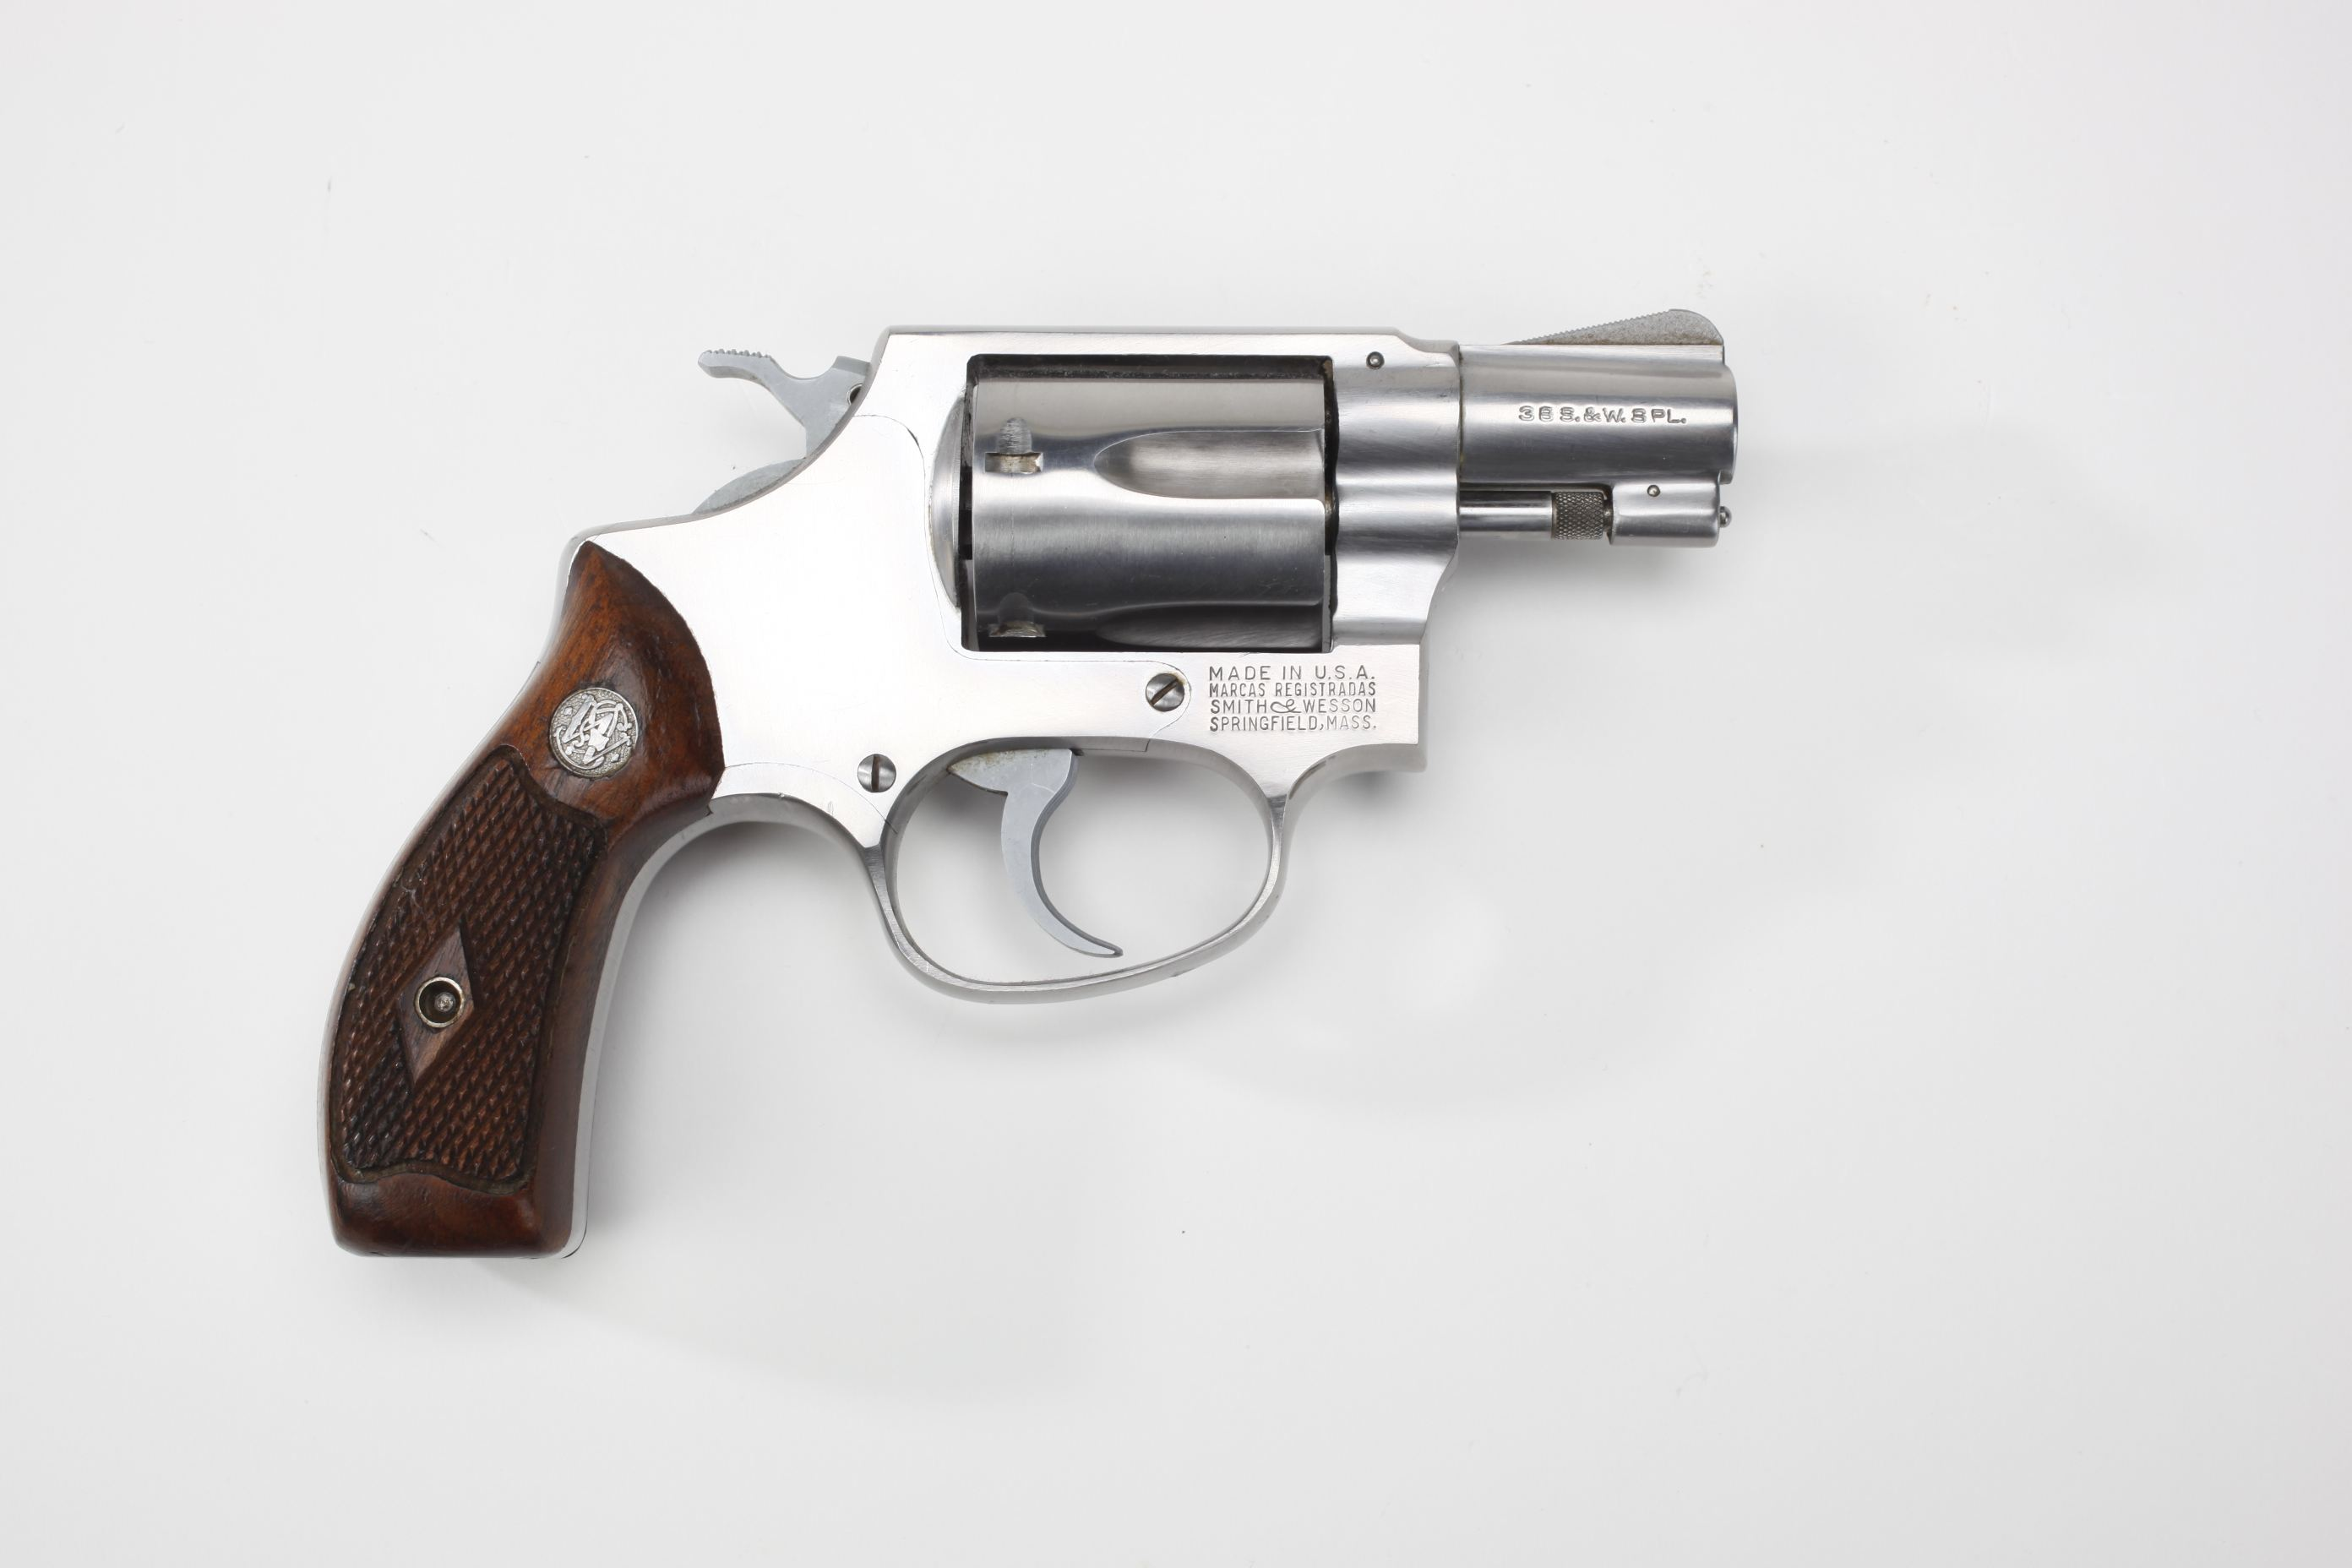 Smith & Wesson Model 60 Chiefs Special Revolver